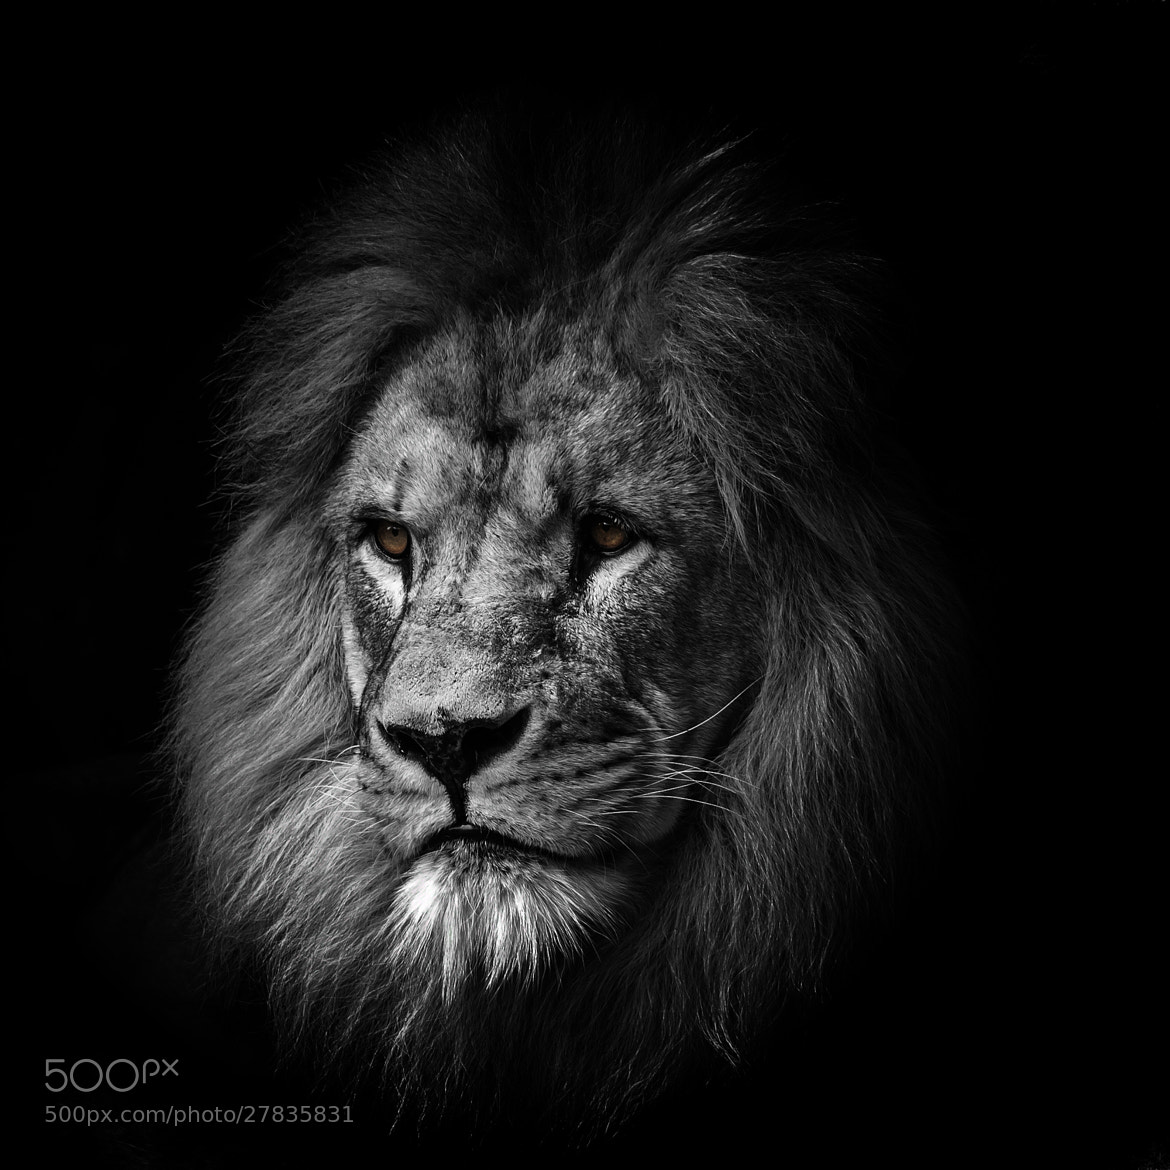 Photograph King portait by Bart Mozer on 500px